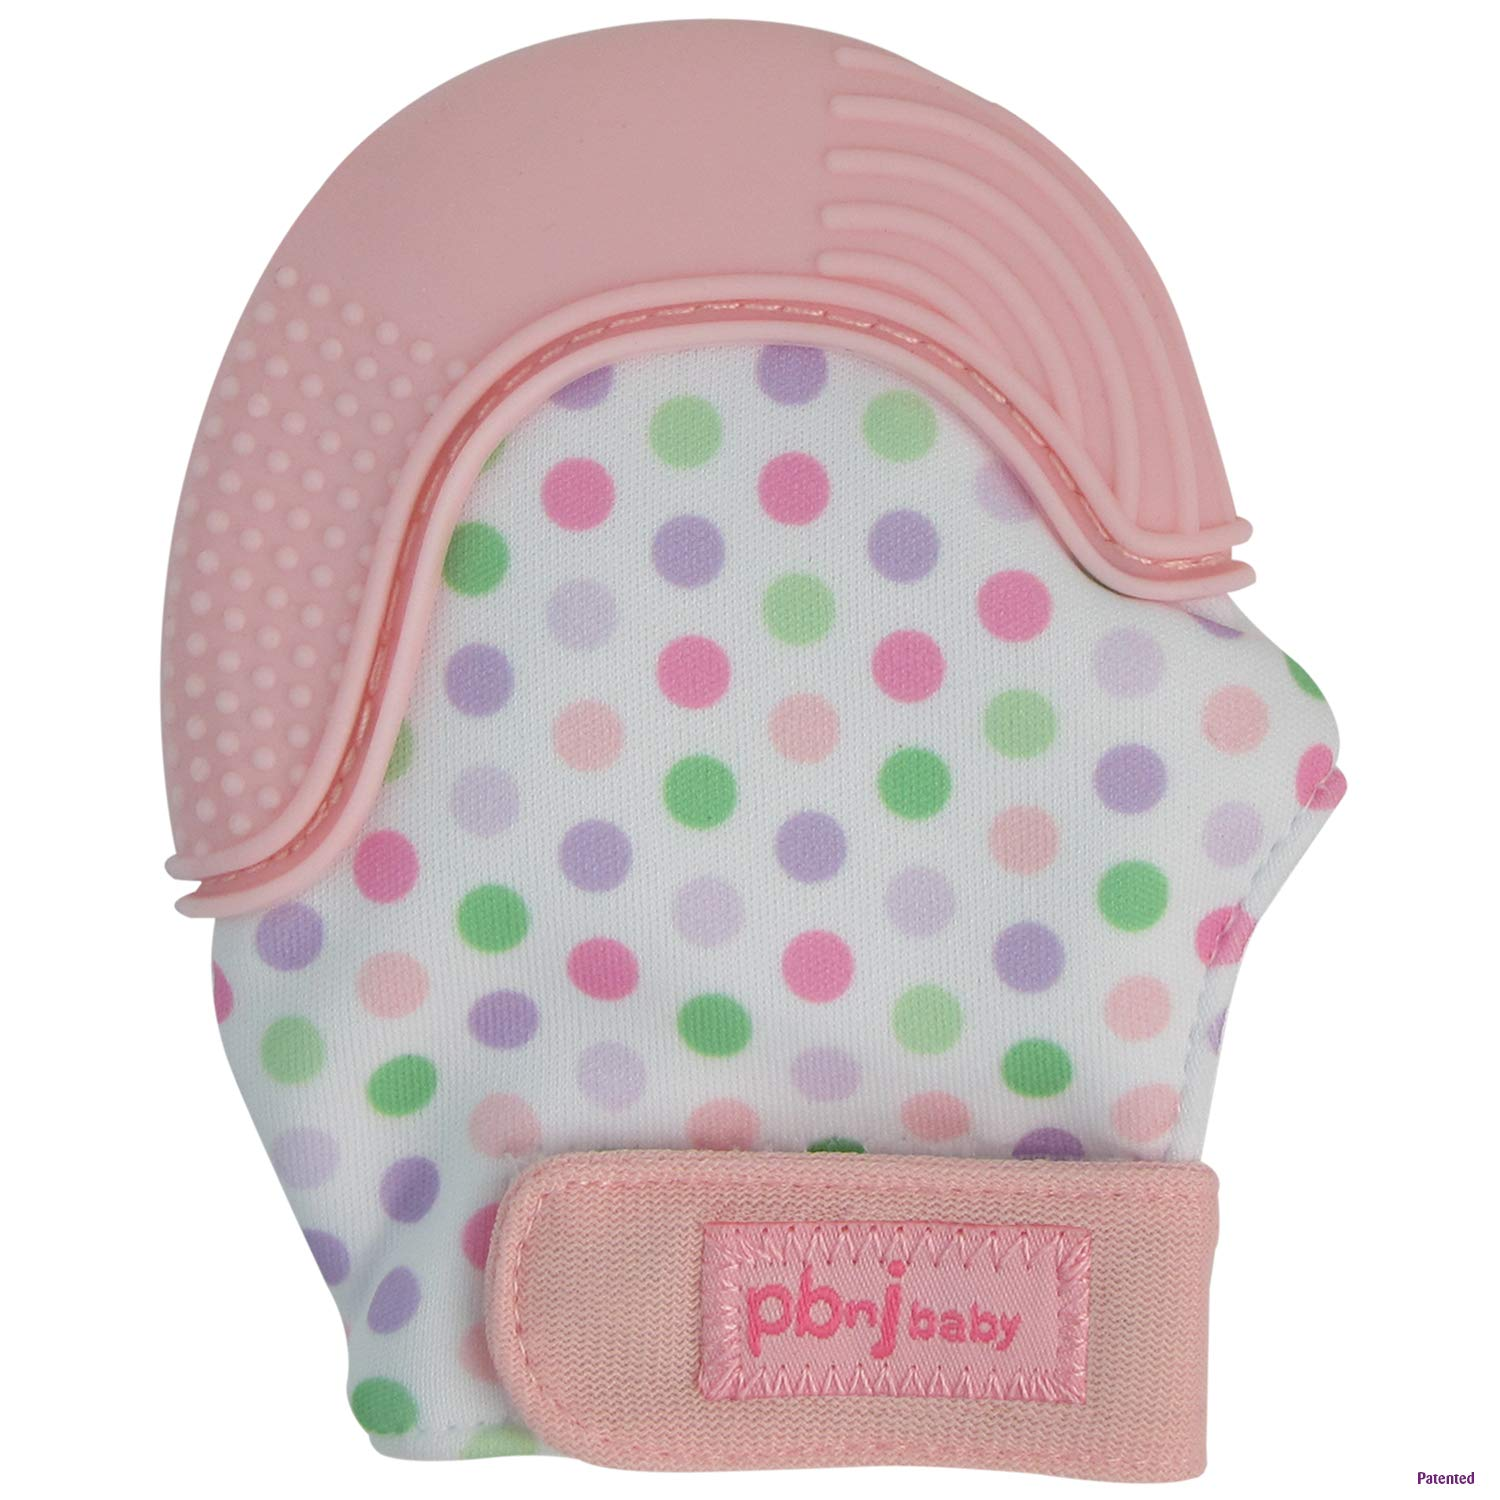 PBnJ baby Silicone Infant Teething Mitten Teether Glove Mitt Toy with Travel Bag (Pink Dot)